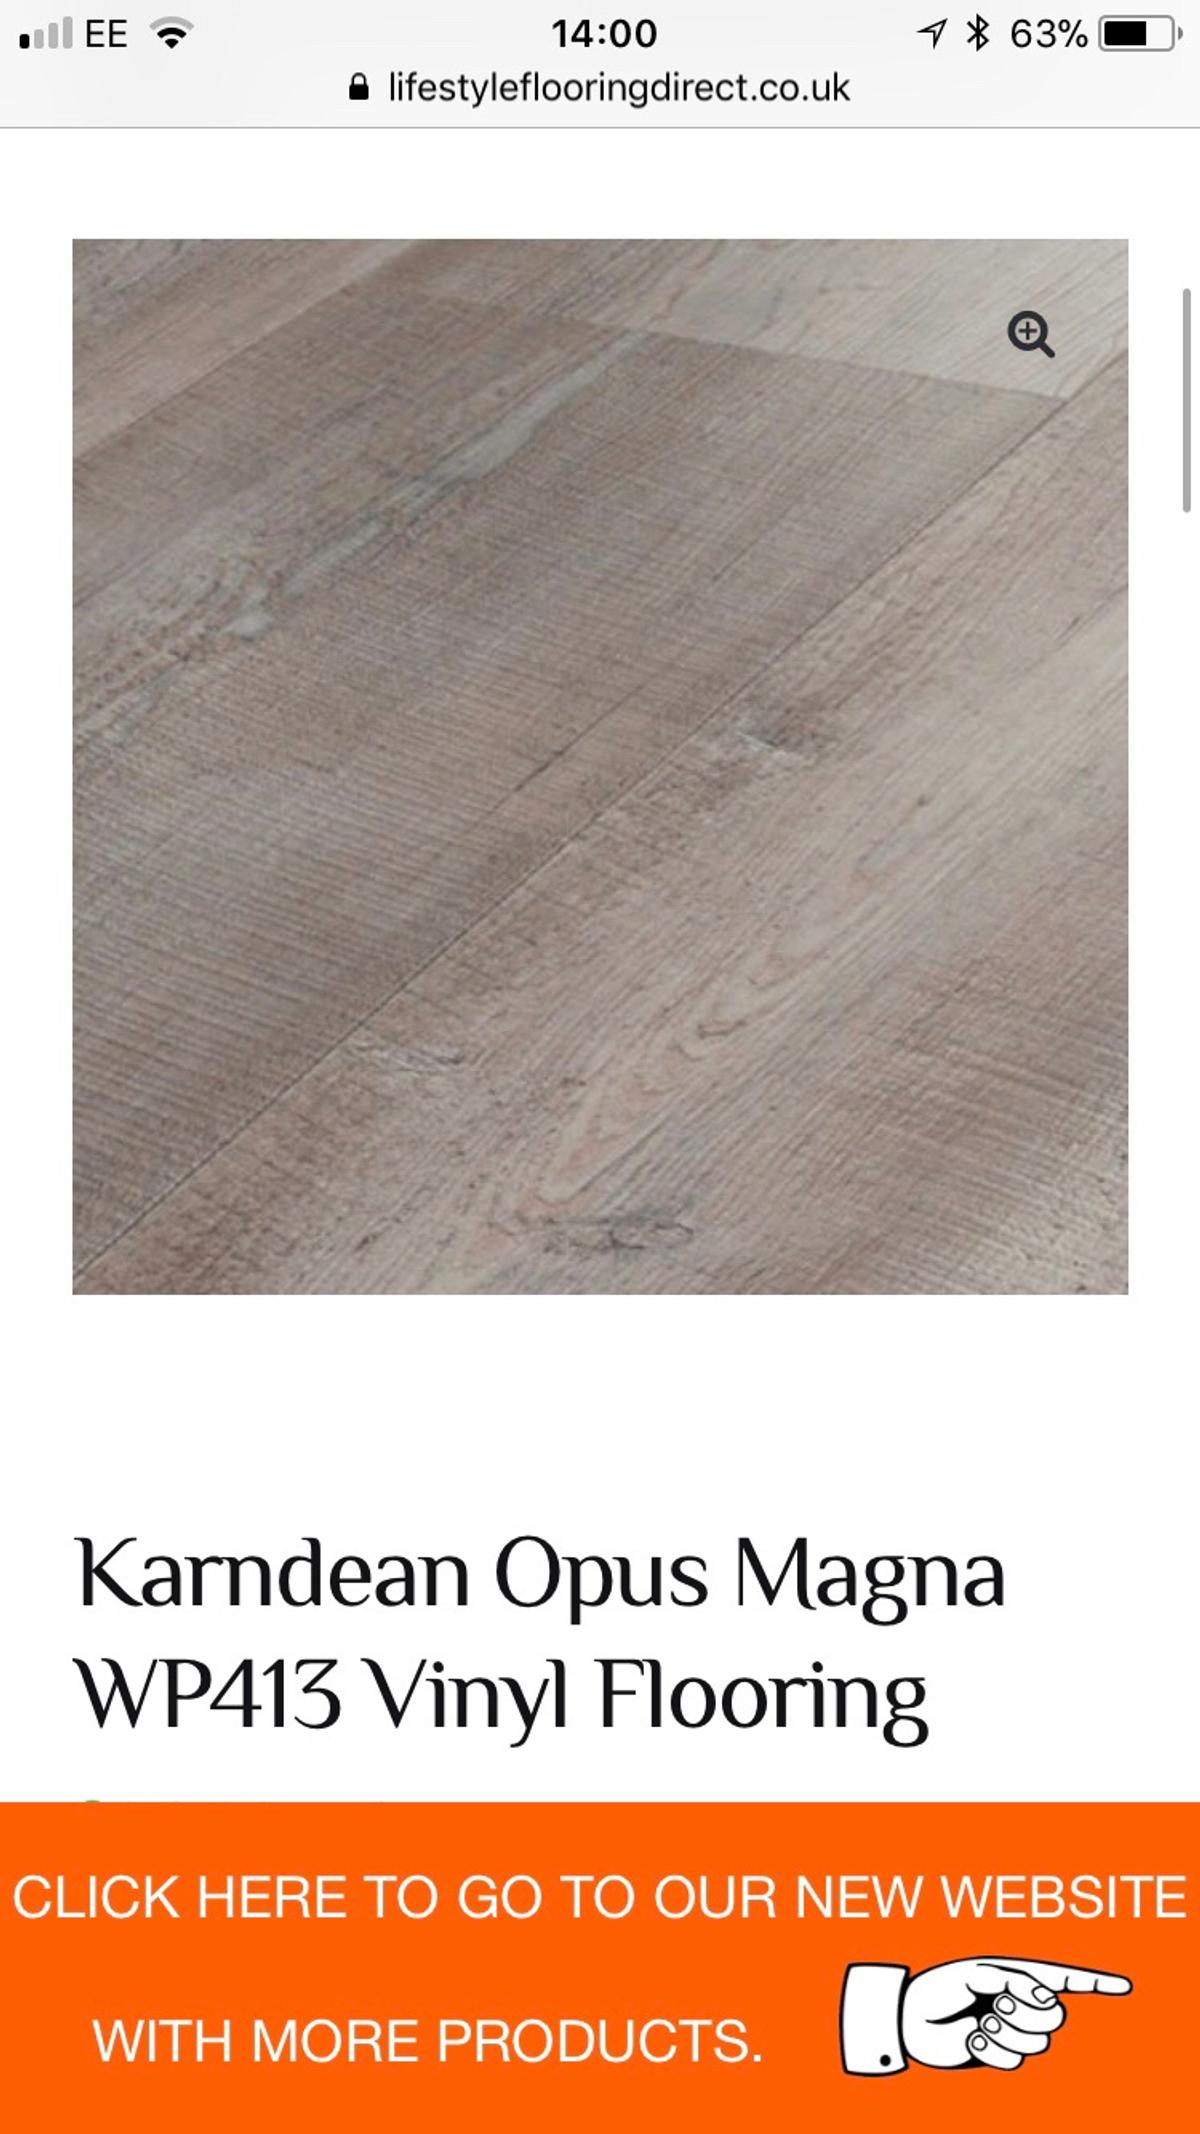 4 Boxes Karndean Opus Magna Vinyl Flooring In Bl2 Bolton For 300 00